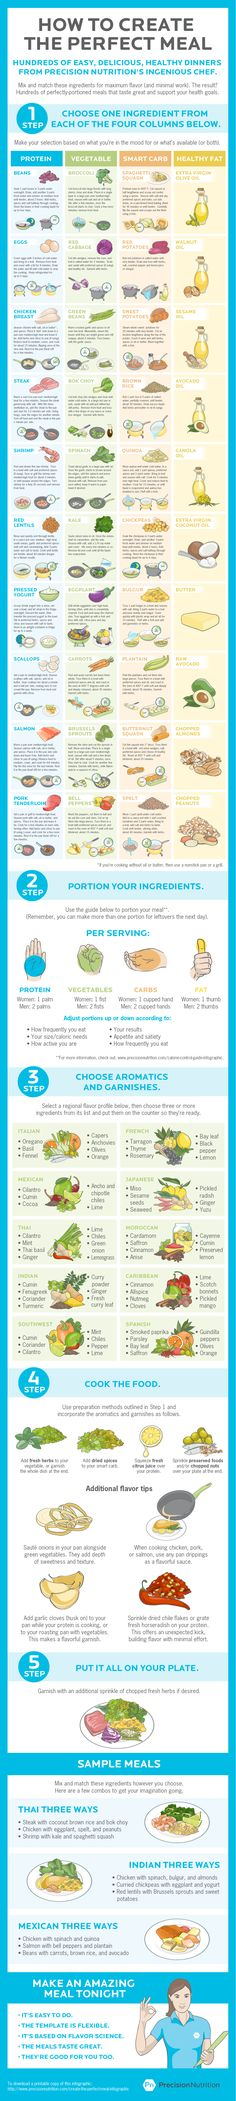 Five Steps to a Perfectly Balanced Meal - Infographic #dietguide